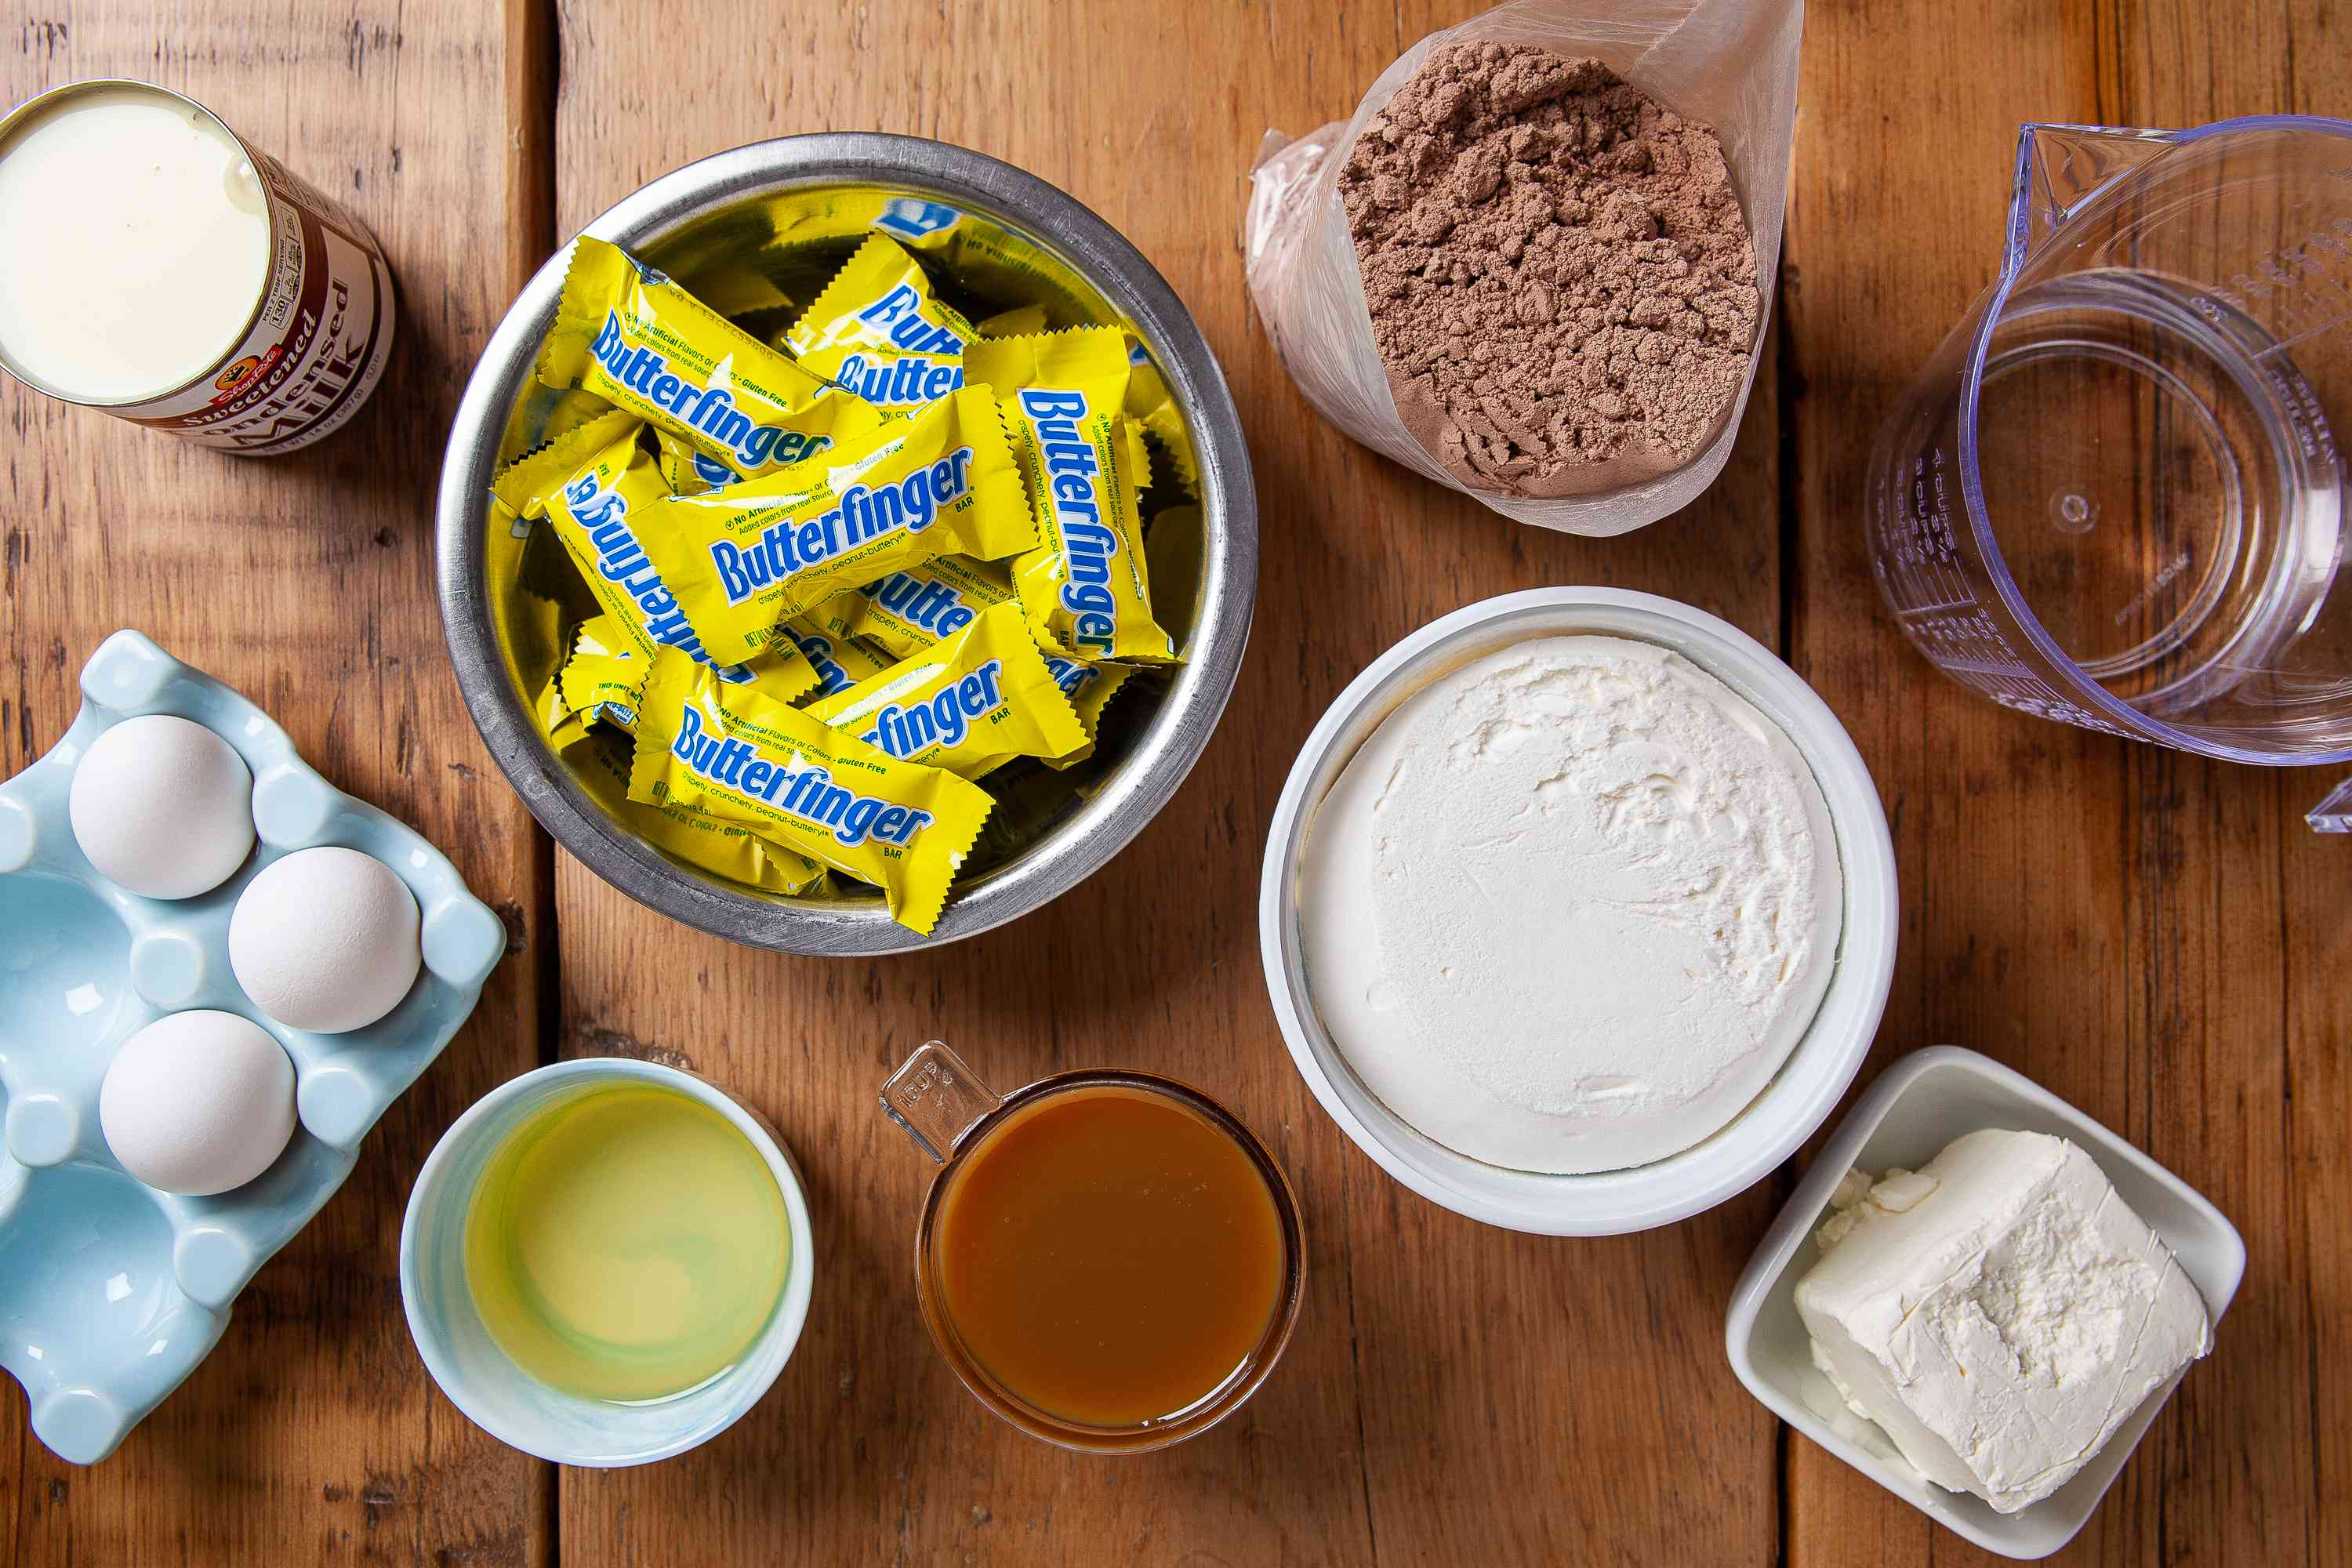 Gather the ingredients for the Butterfinger Cake